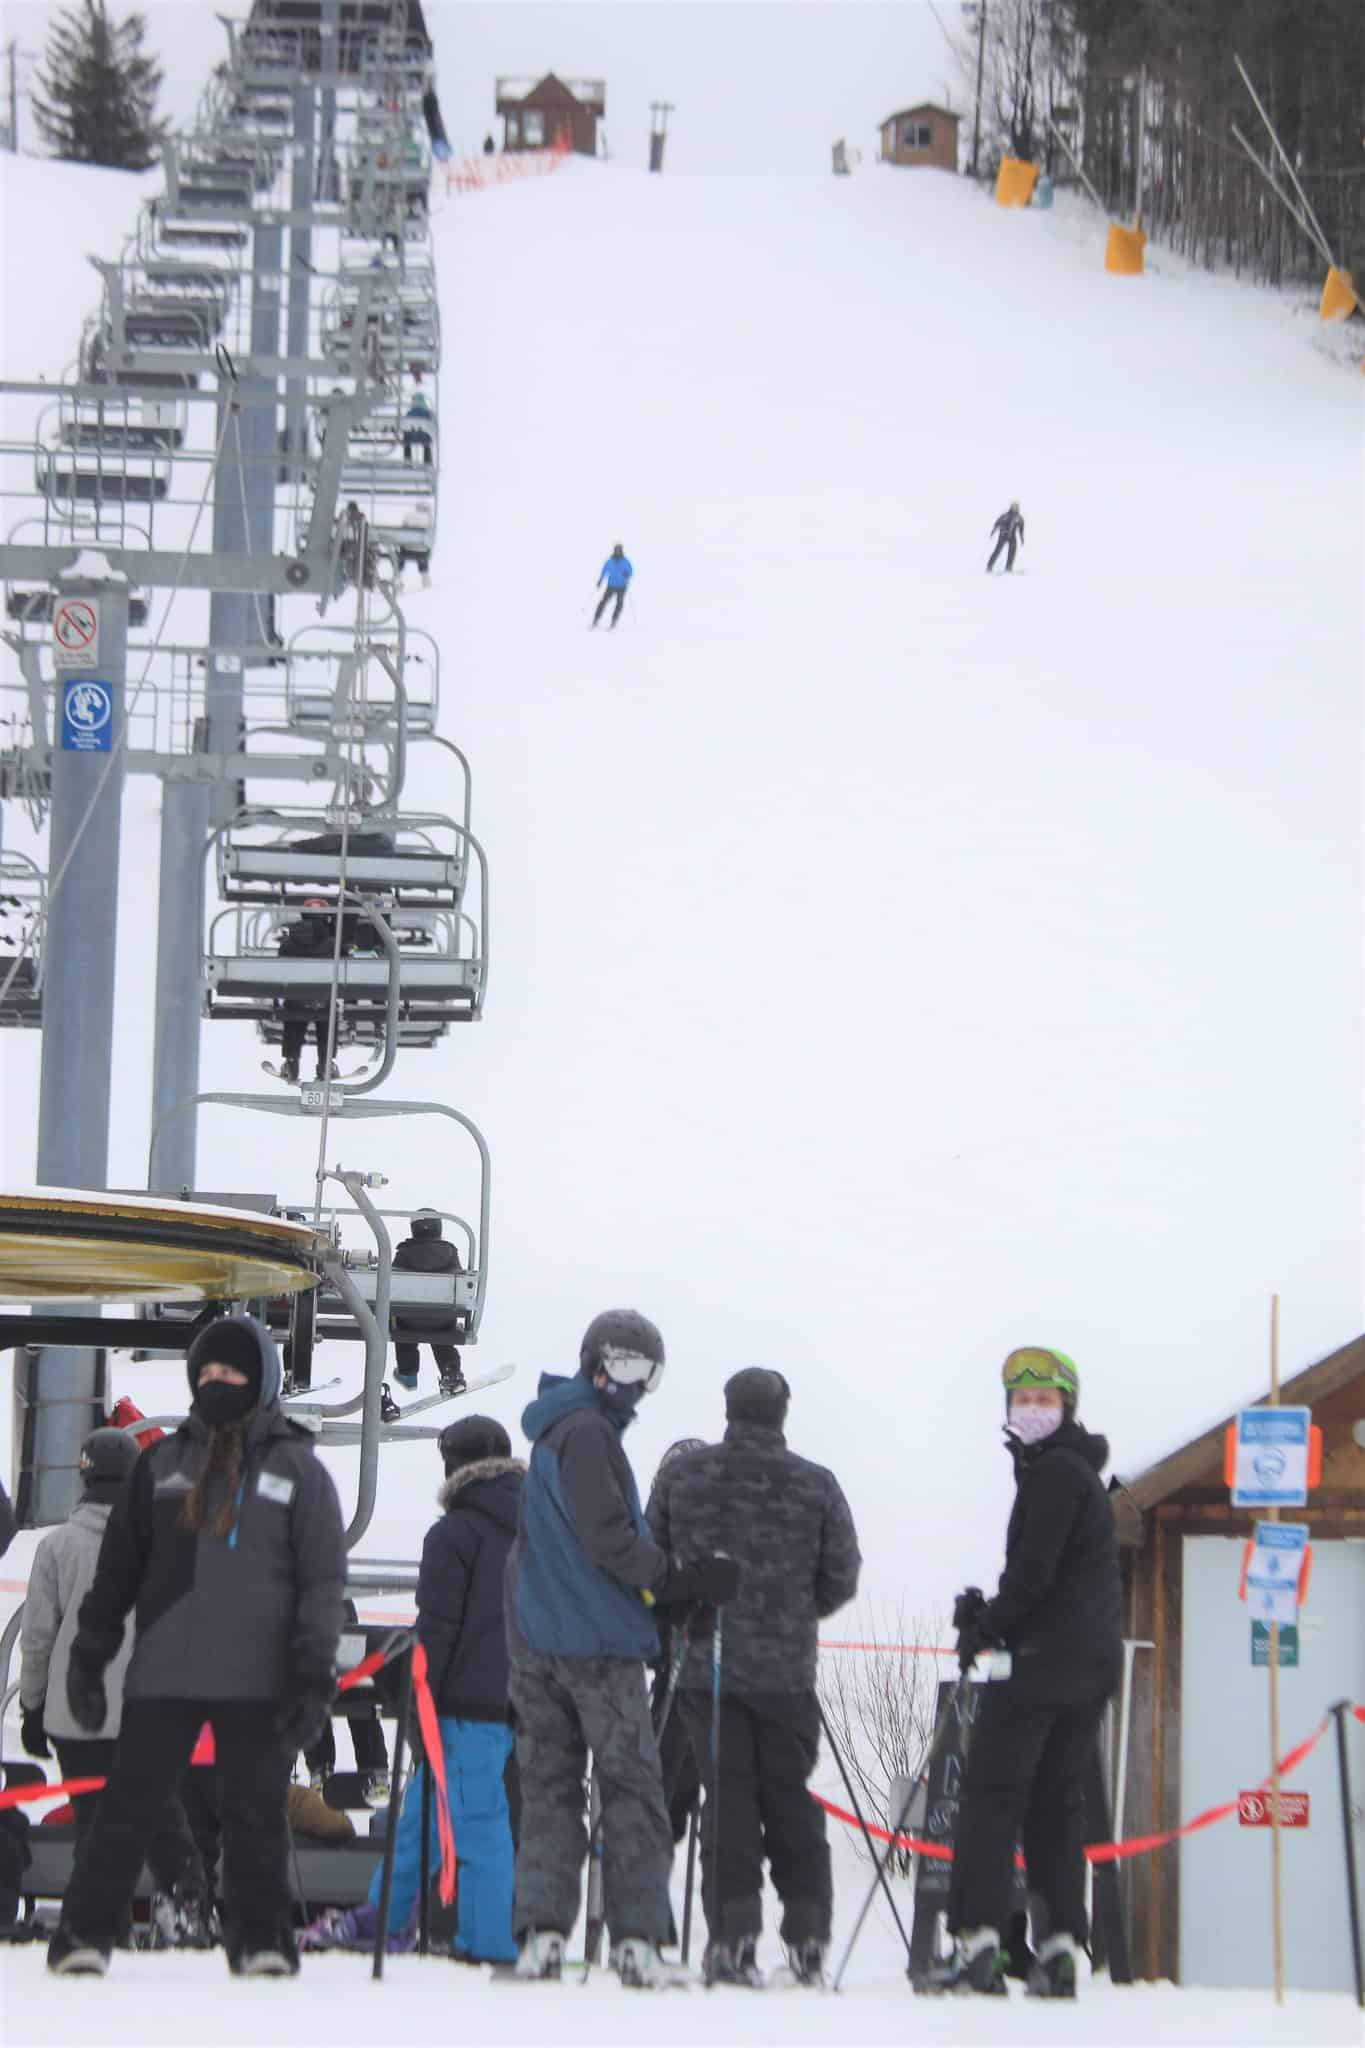 Back on the slopes – again